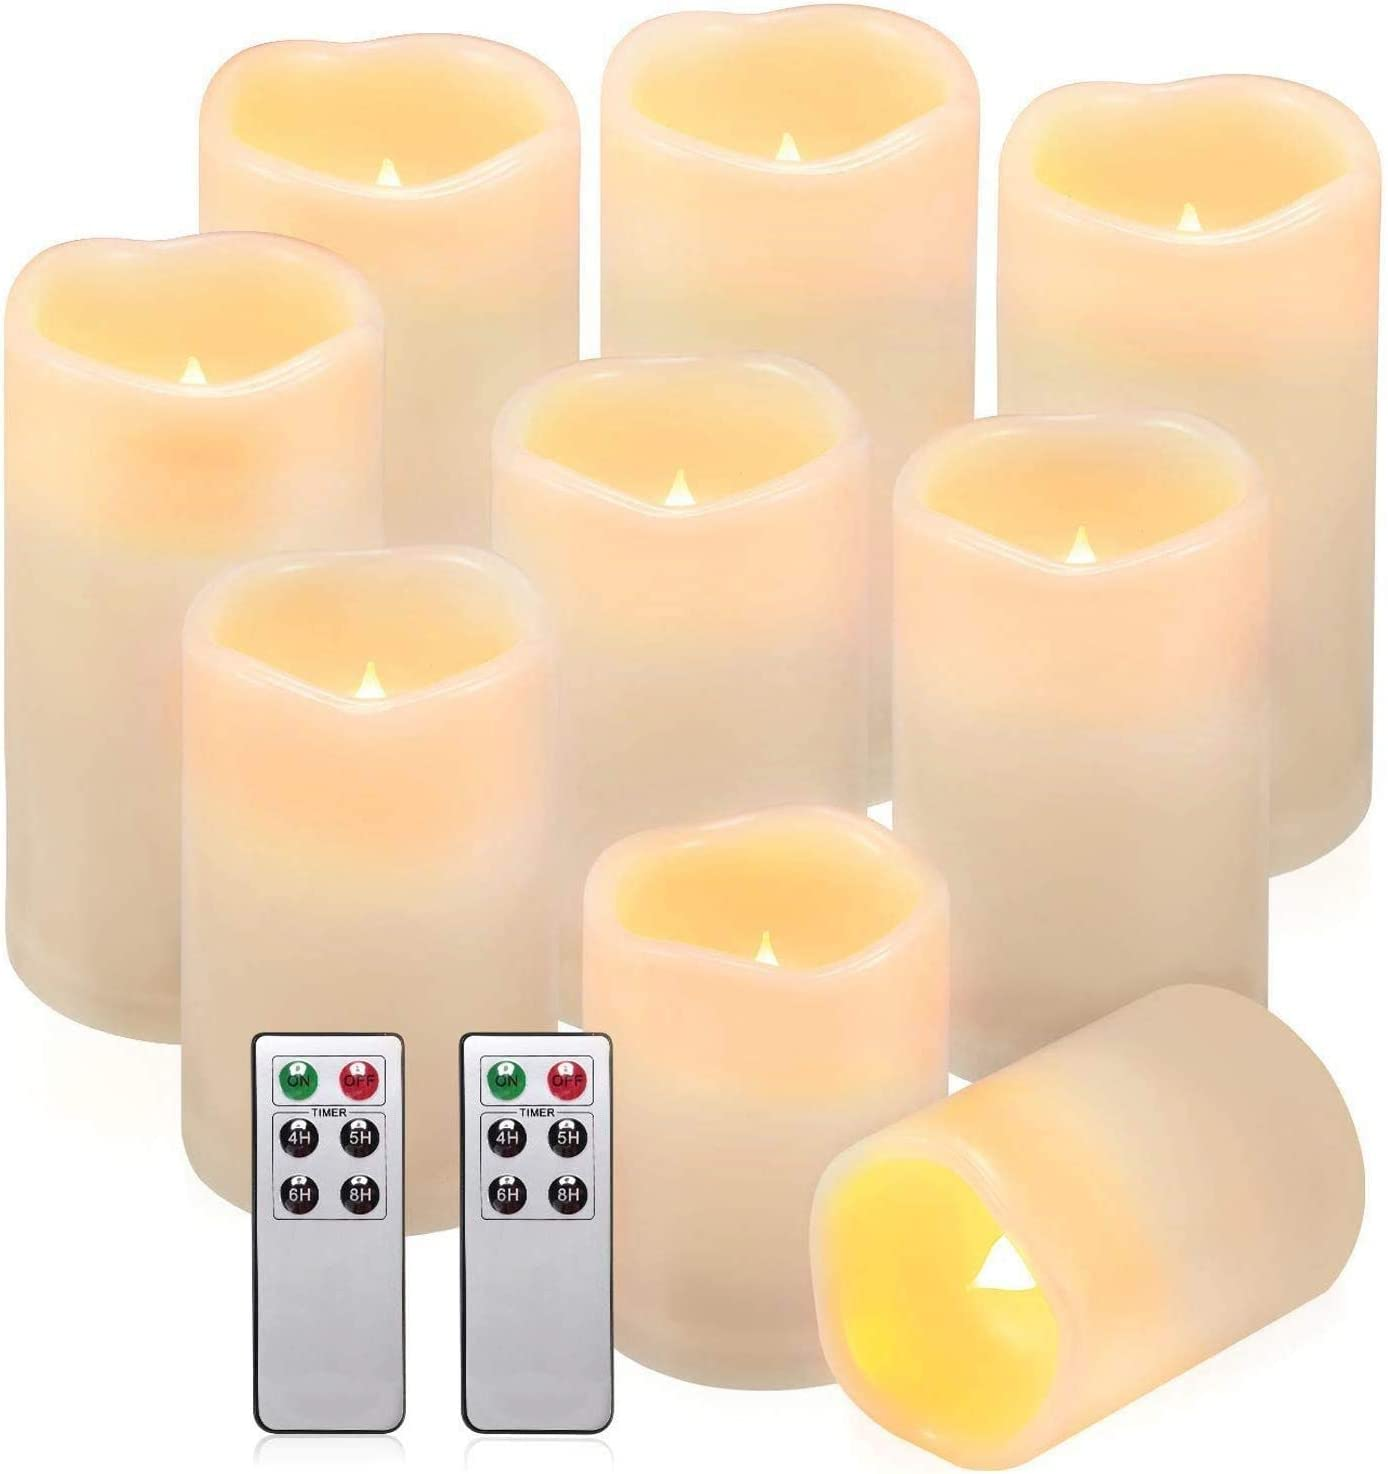 "Comenzar Flameless Candles, Waterproof Outdoor Indoor Battery Candles Set of 9(H 4"" 5"" 6"" x D 3"") Led Candles with Remote Timer"